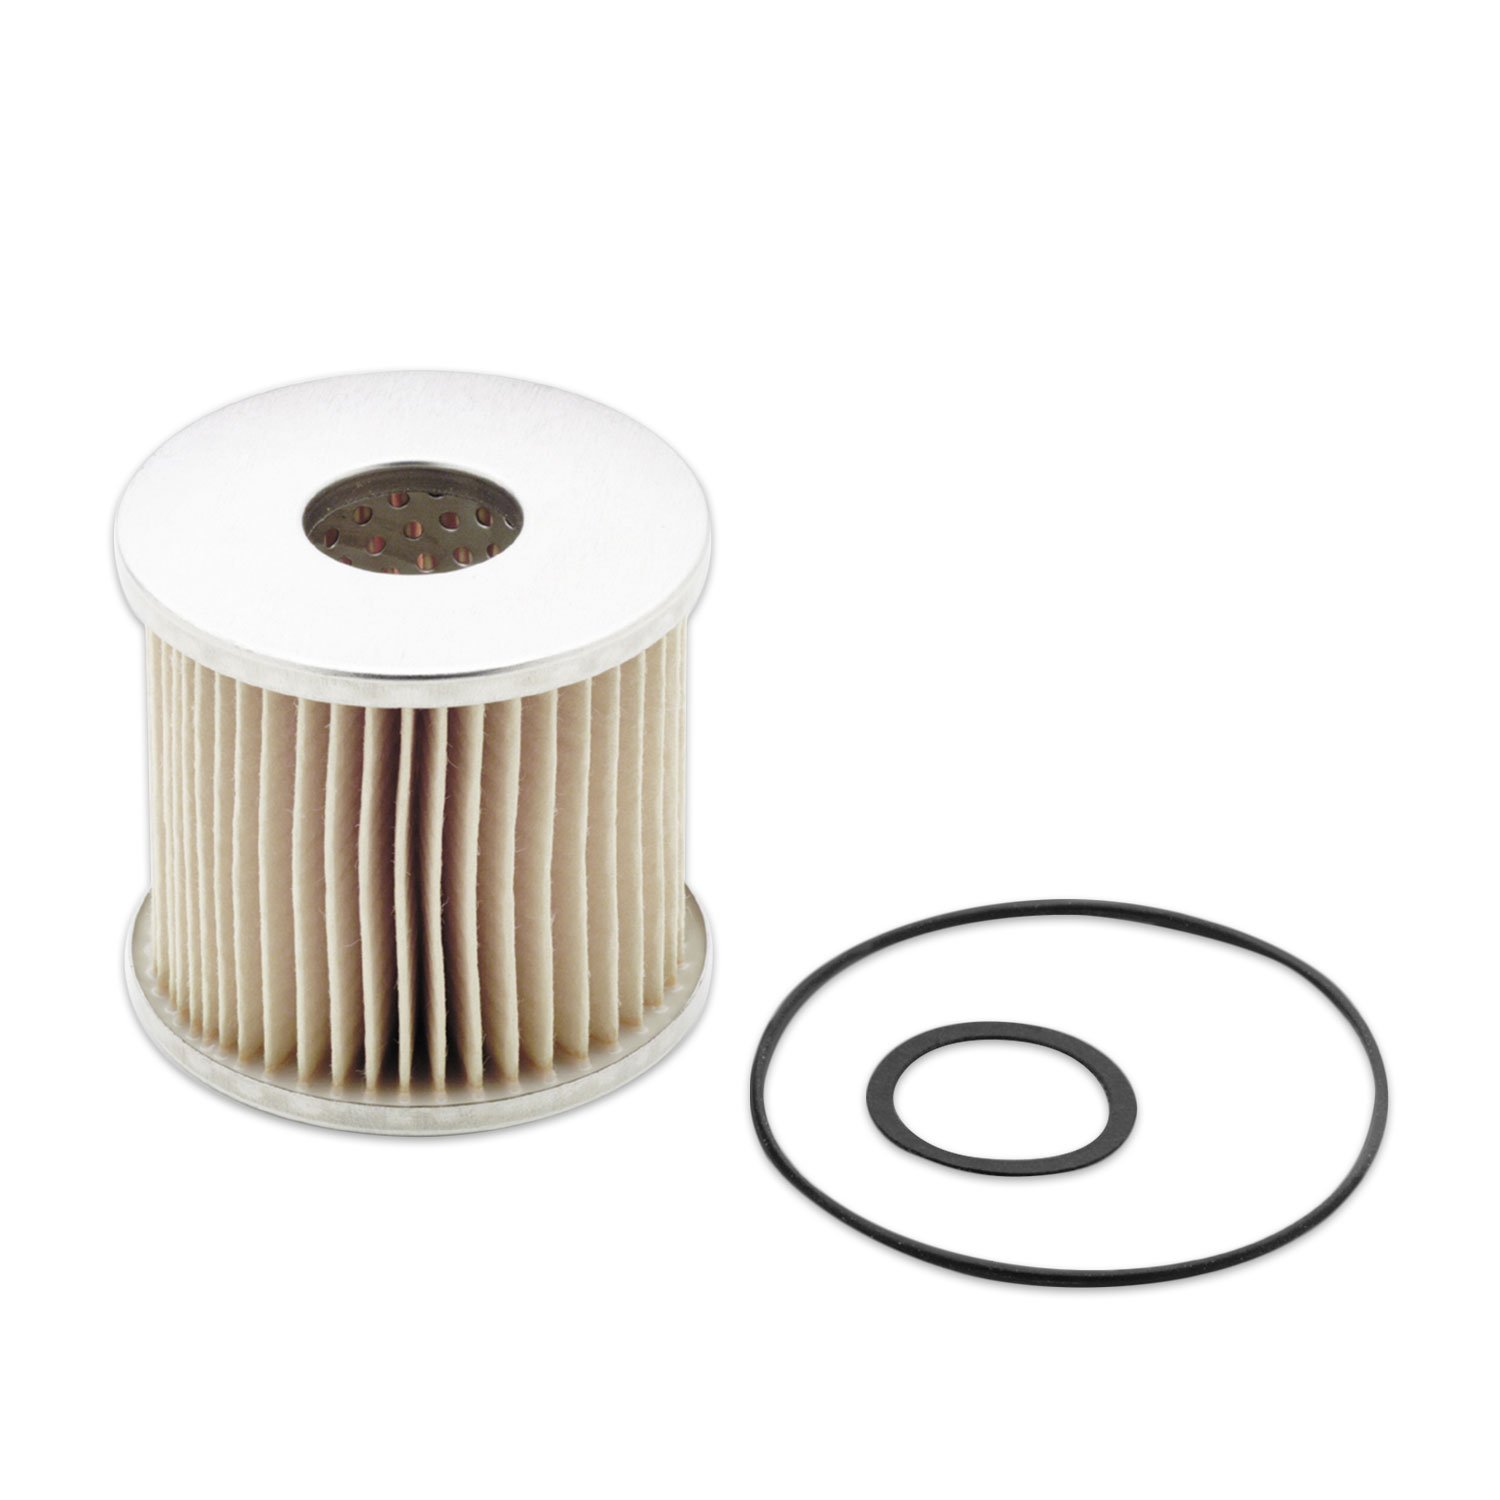 mallory 29239 mallory paper fuel filter